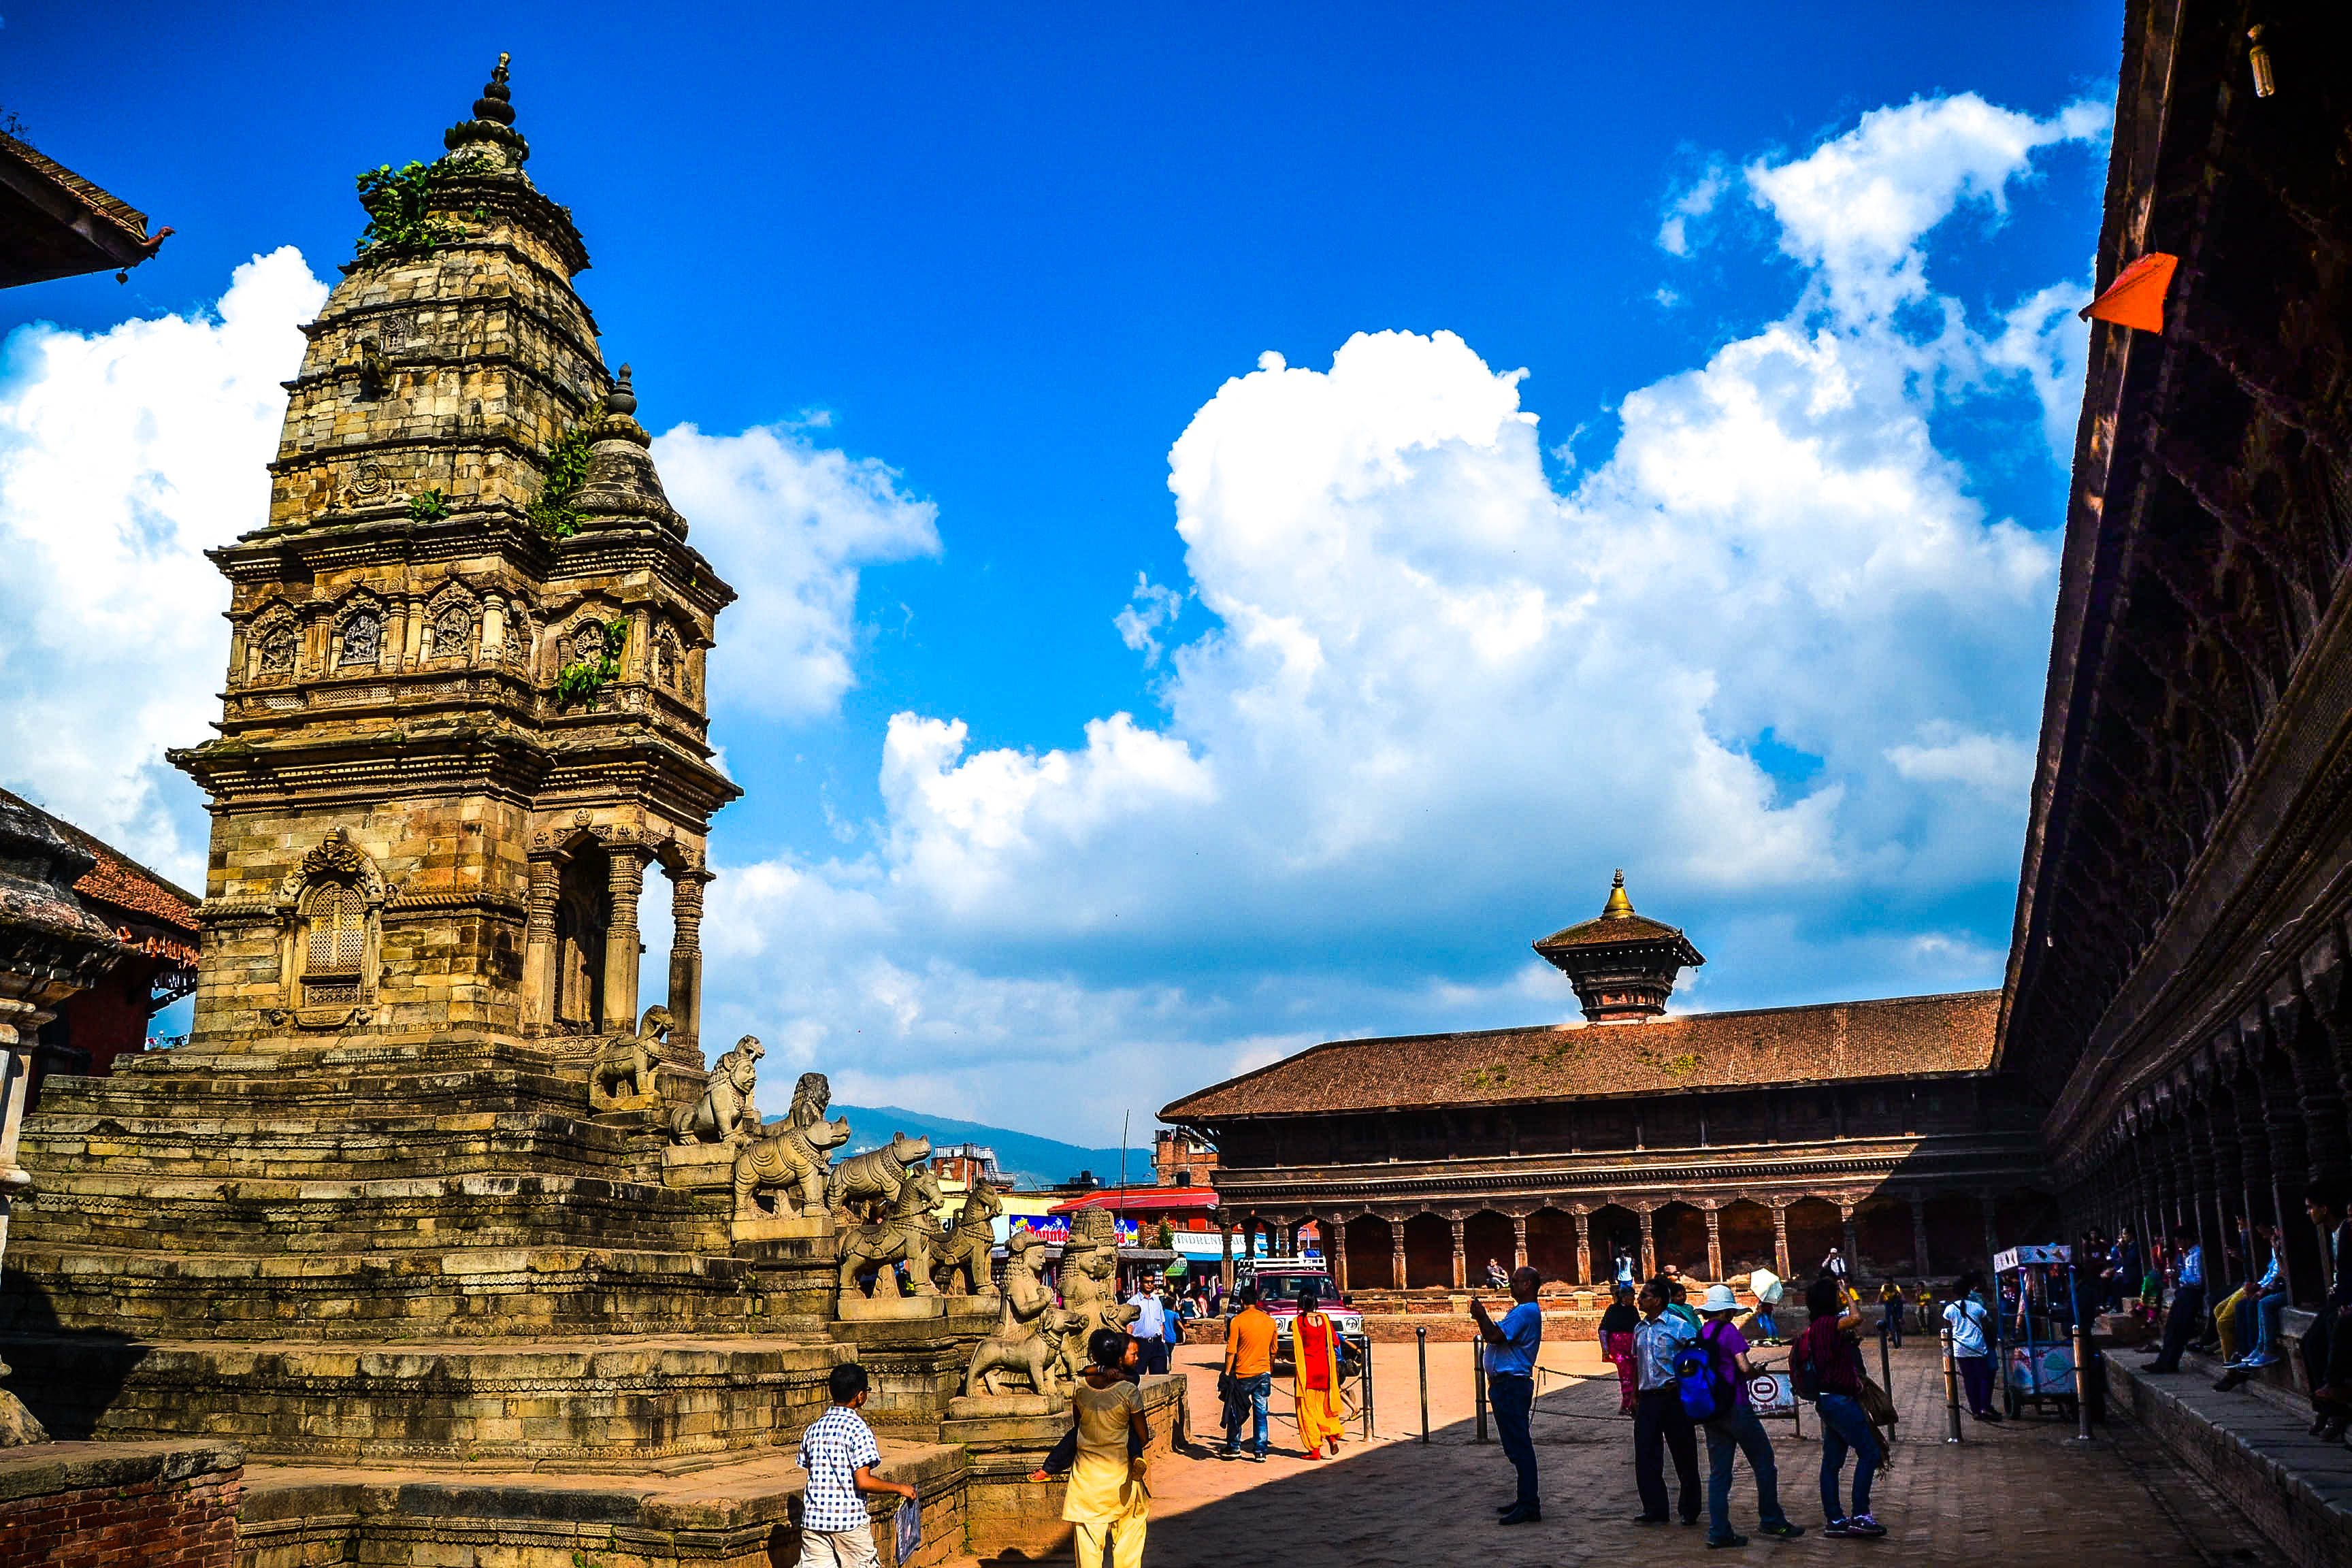 essay on bhaktapur durbar square Bhaktapur durbar square is a conglomeration of pagoda and shikhara-style temples grouped around a fifty-five window palace of brick and wood.